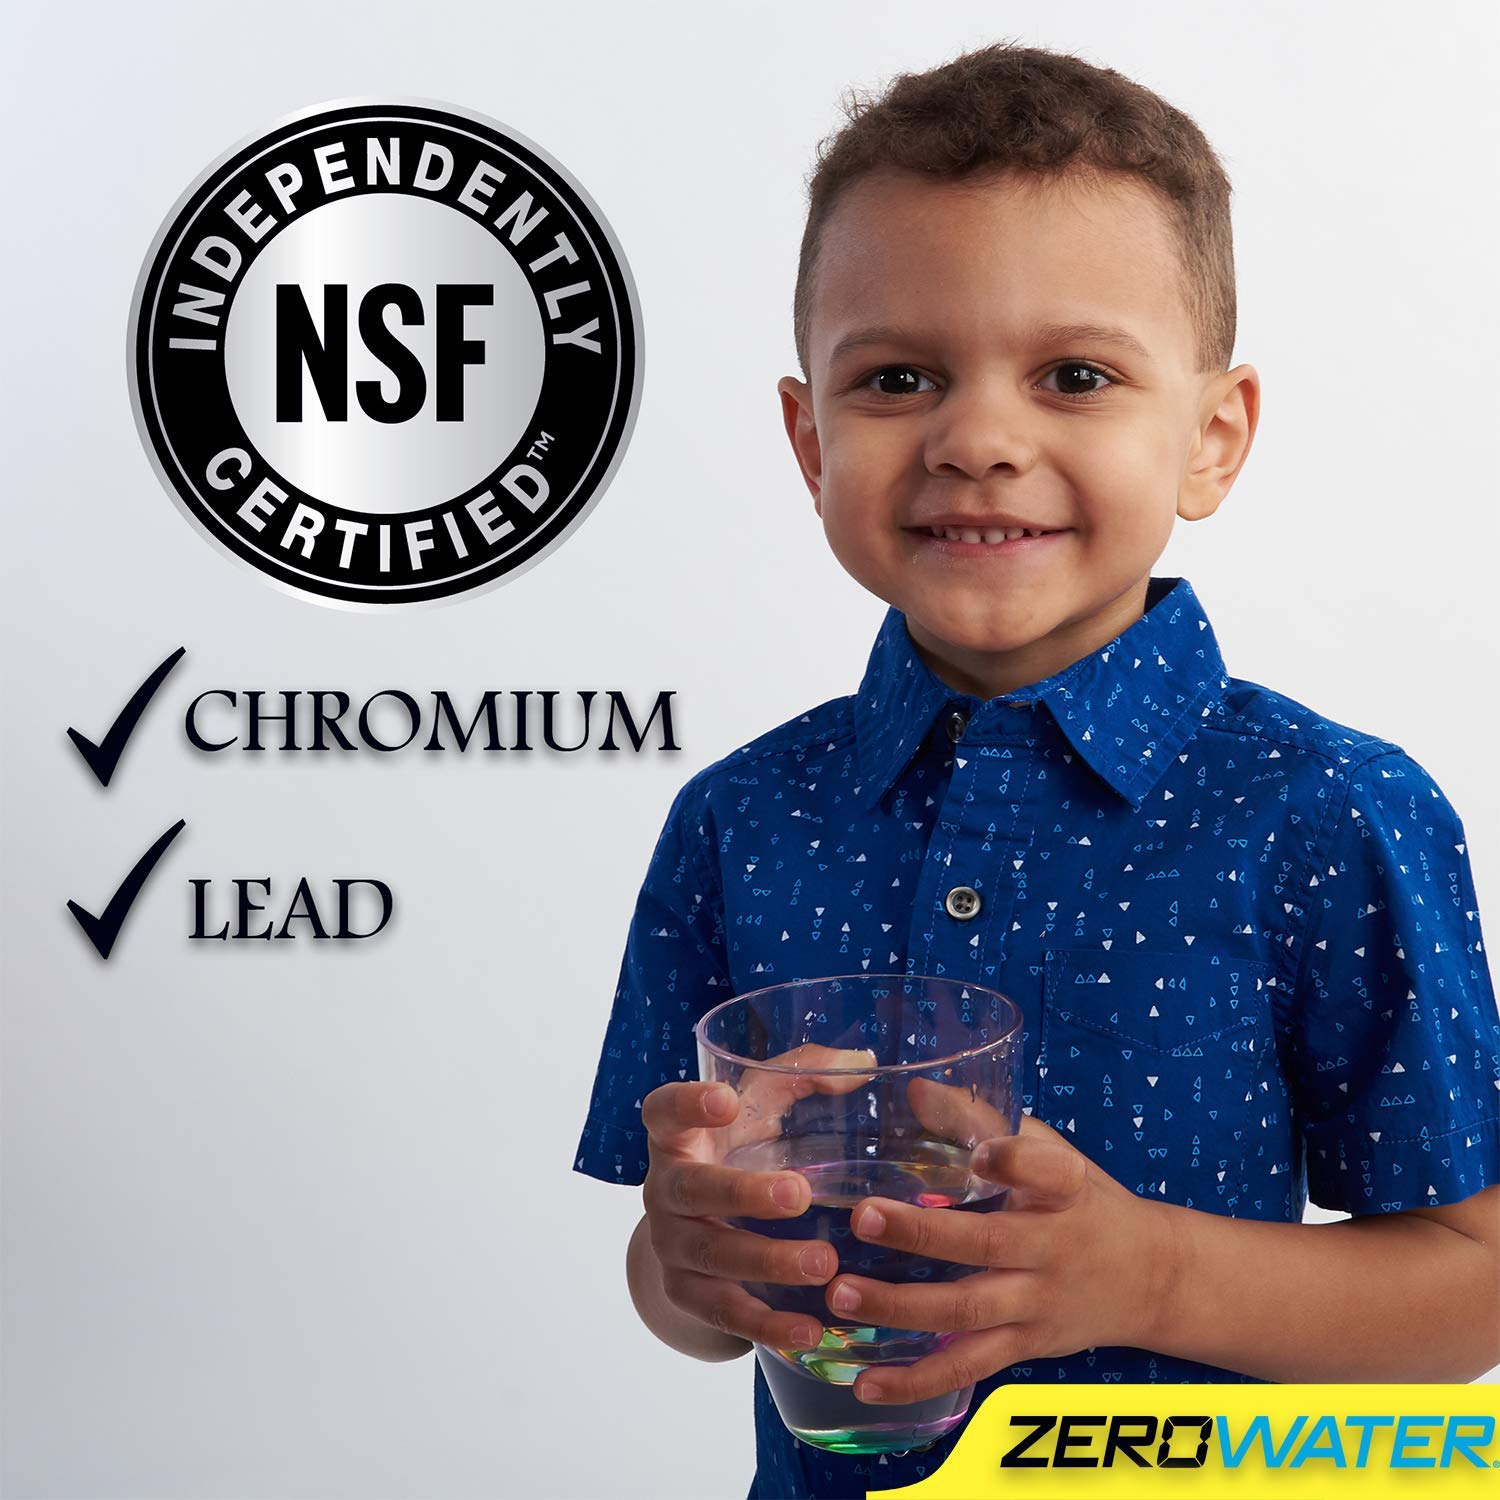 NSF Certified ZeroWater 23 Cup Pitcher with Free Water Quality Meter BPA-Free